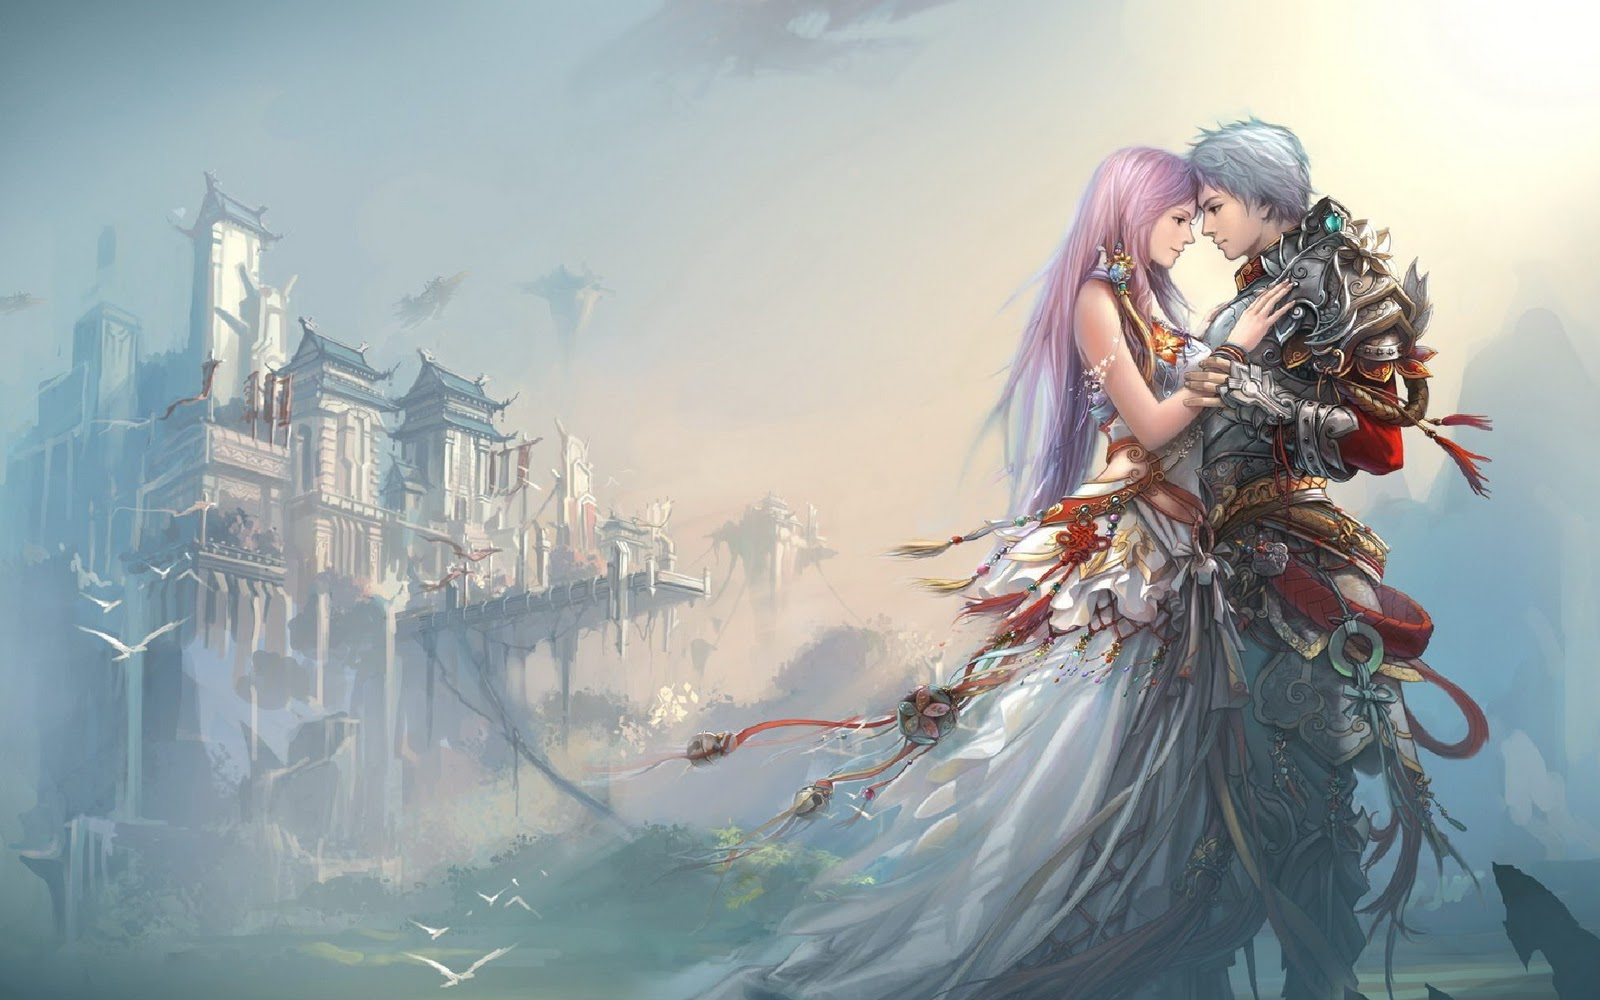 Love Wallpaper Girl Boy : Anime Boy Girl Love castle HD Wallpaper Love Wallpapers Romantic Wallpapers - Stock Photos ...